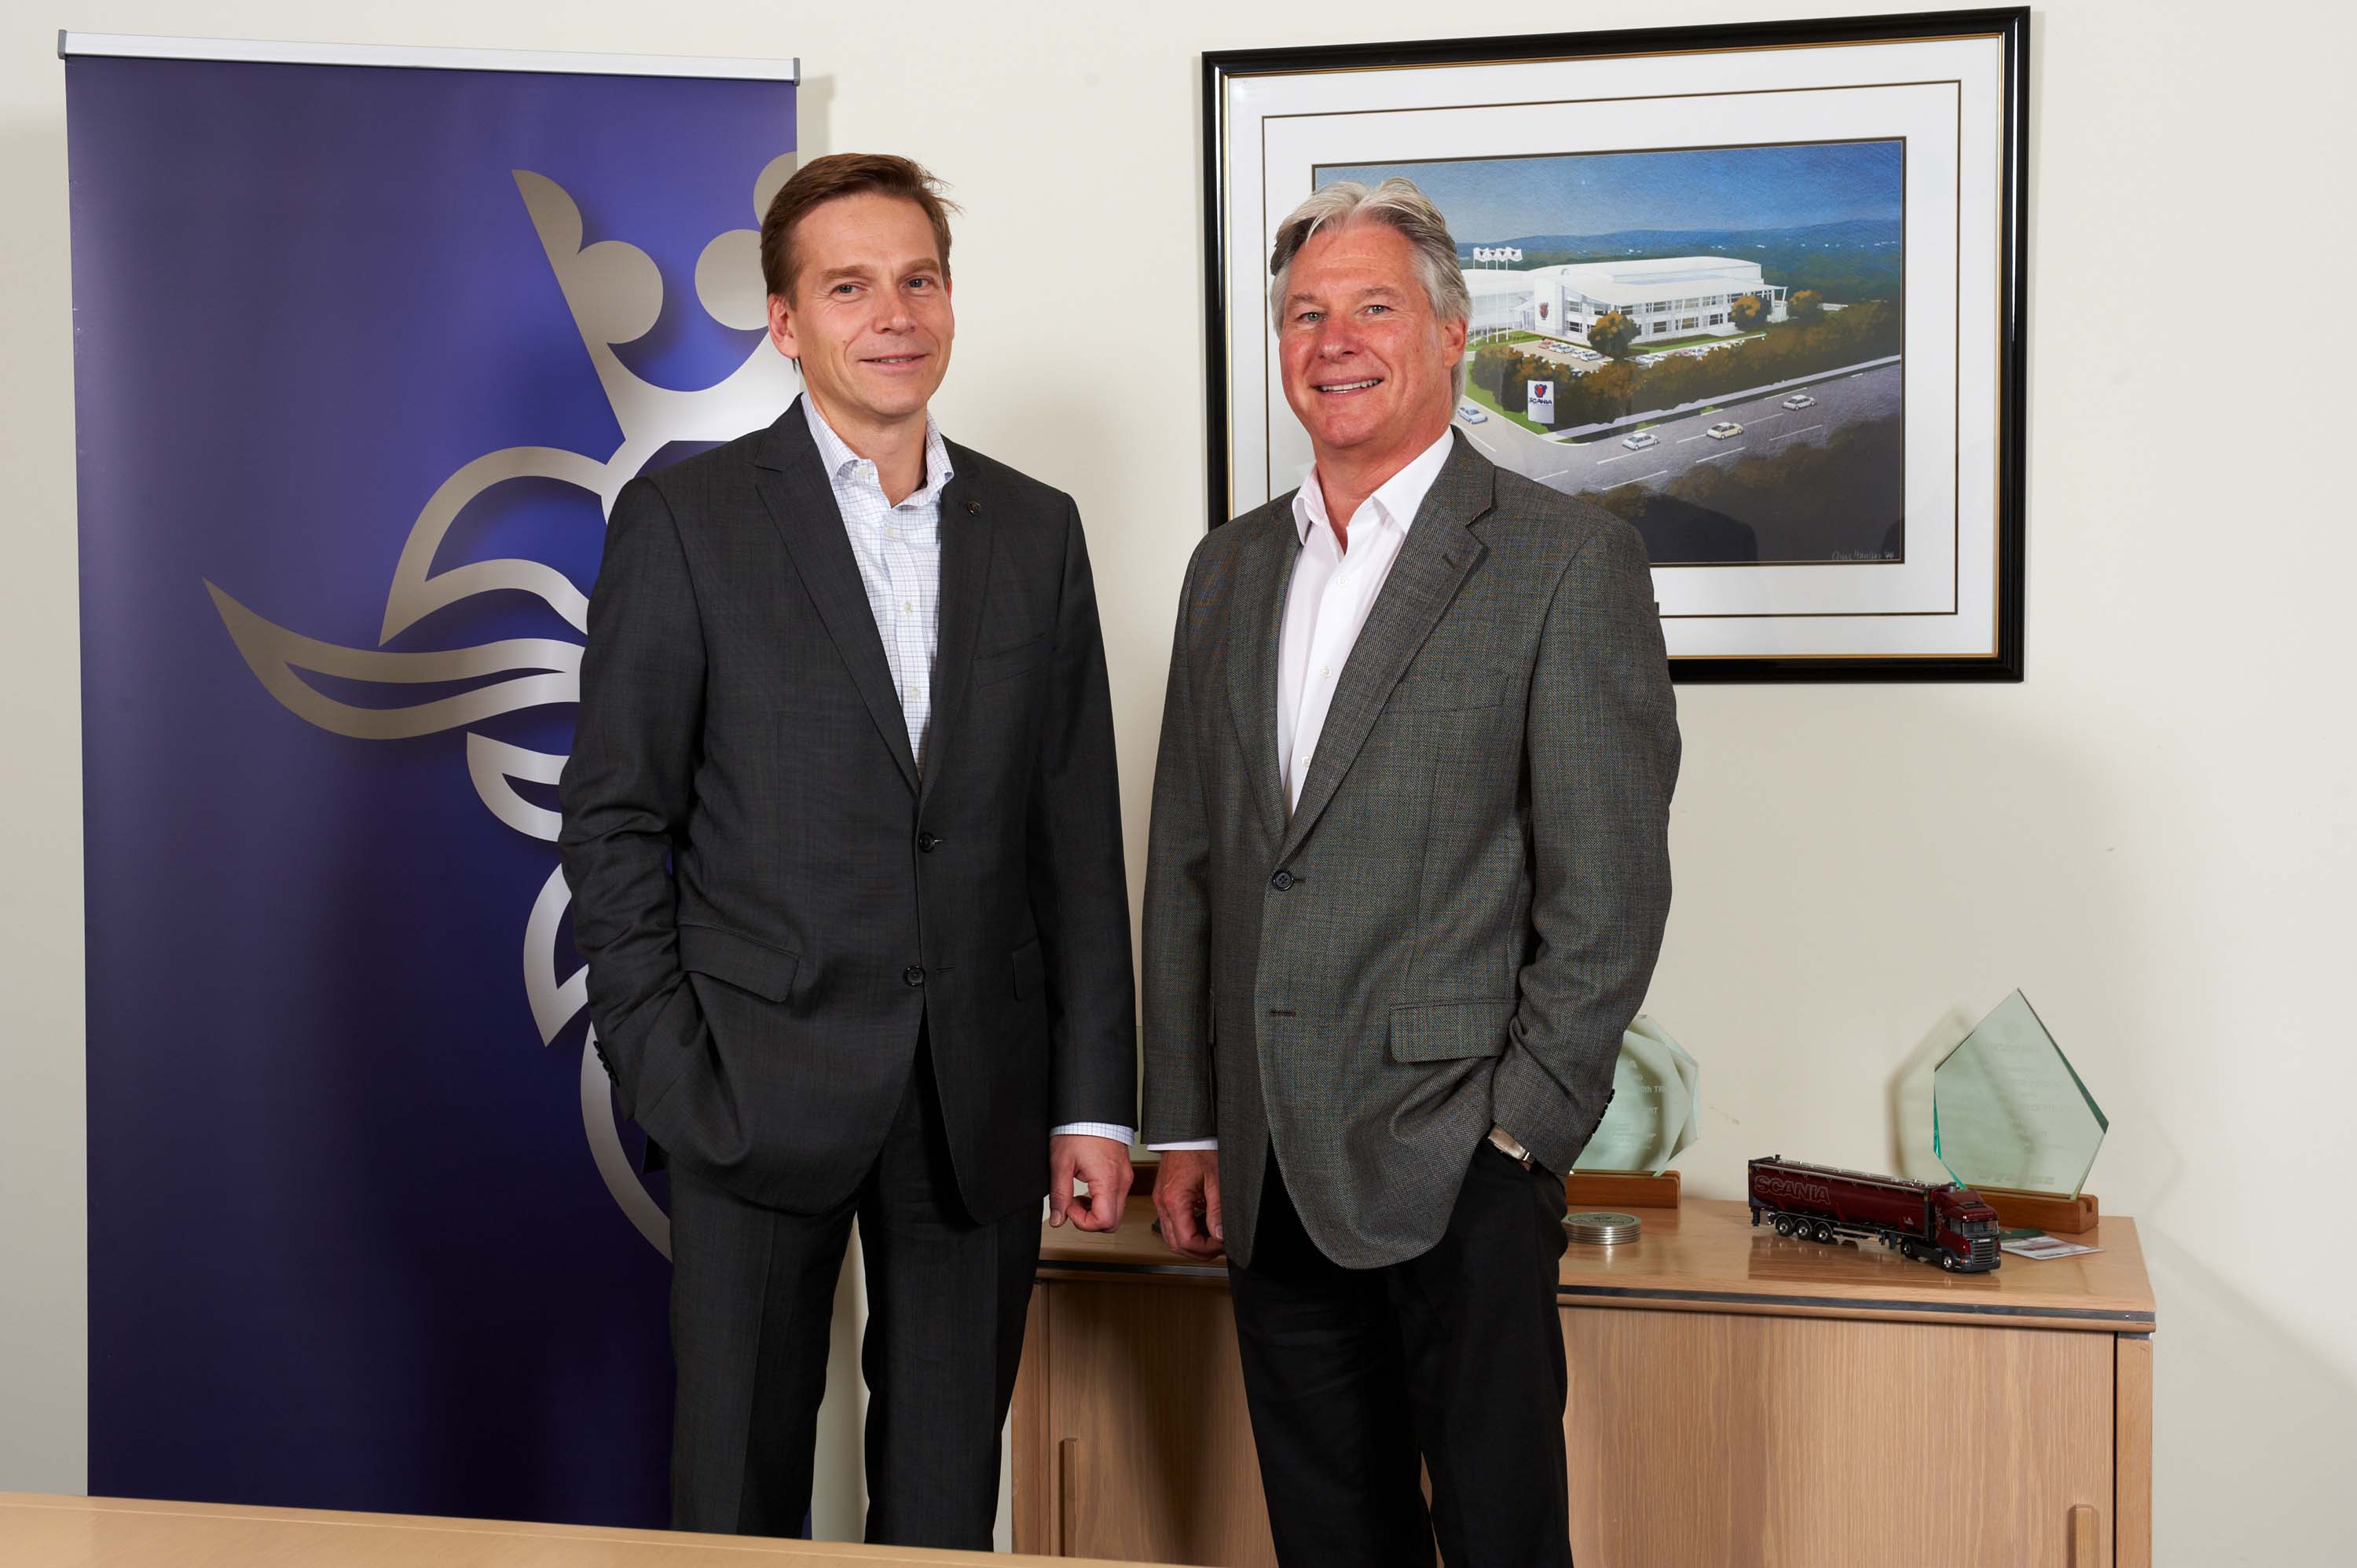 christian levin  head of sales and marketing  scania cv and roger mccarthy